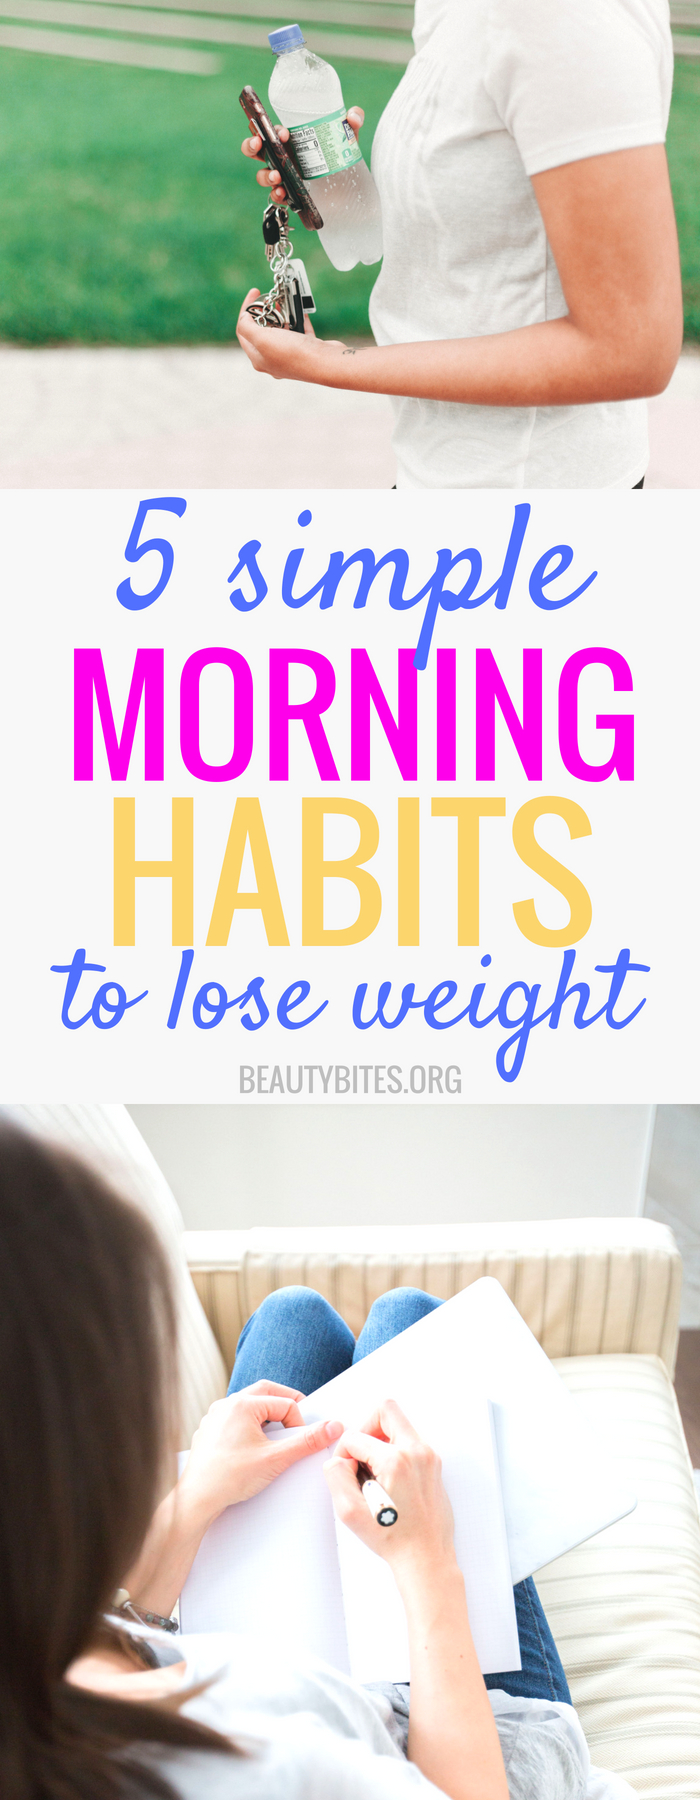 5 simple morning habits to lose weight long-term! A healthy morning routine can really transform your life and I found these morning habits help me stay in shape and motivate me to work out and eat clean (well, at least most days)! If you want to improve your health & lose weight, but are just sick of eating 1200kcal/day without results, check out these health & fitness tips to find inspiration for a healthy lifestyle! | www.beautybites.org